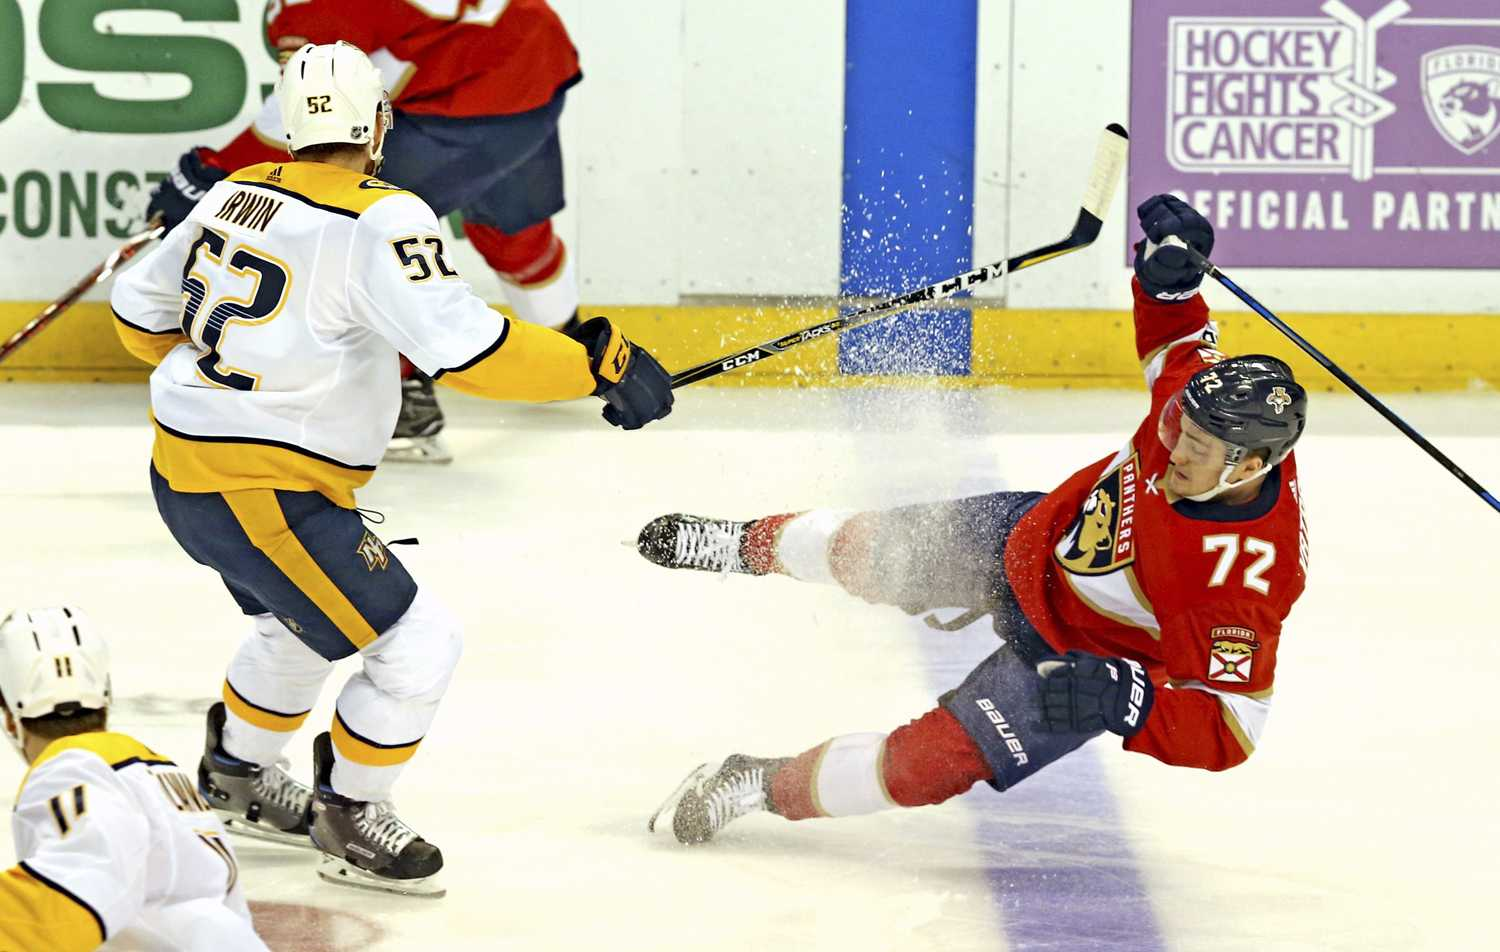 The Florida Panthers' Frank Vatrano (72) is knocked to the ice by the Nashville Predators' Matt Irwin (52) in the first period on Tuesday, April 3. (Charles Trainor Jr./Miami Herald/TNS)